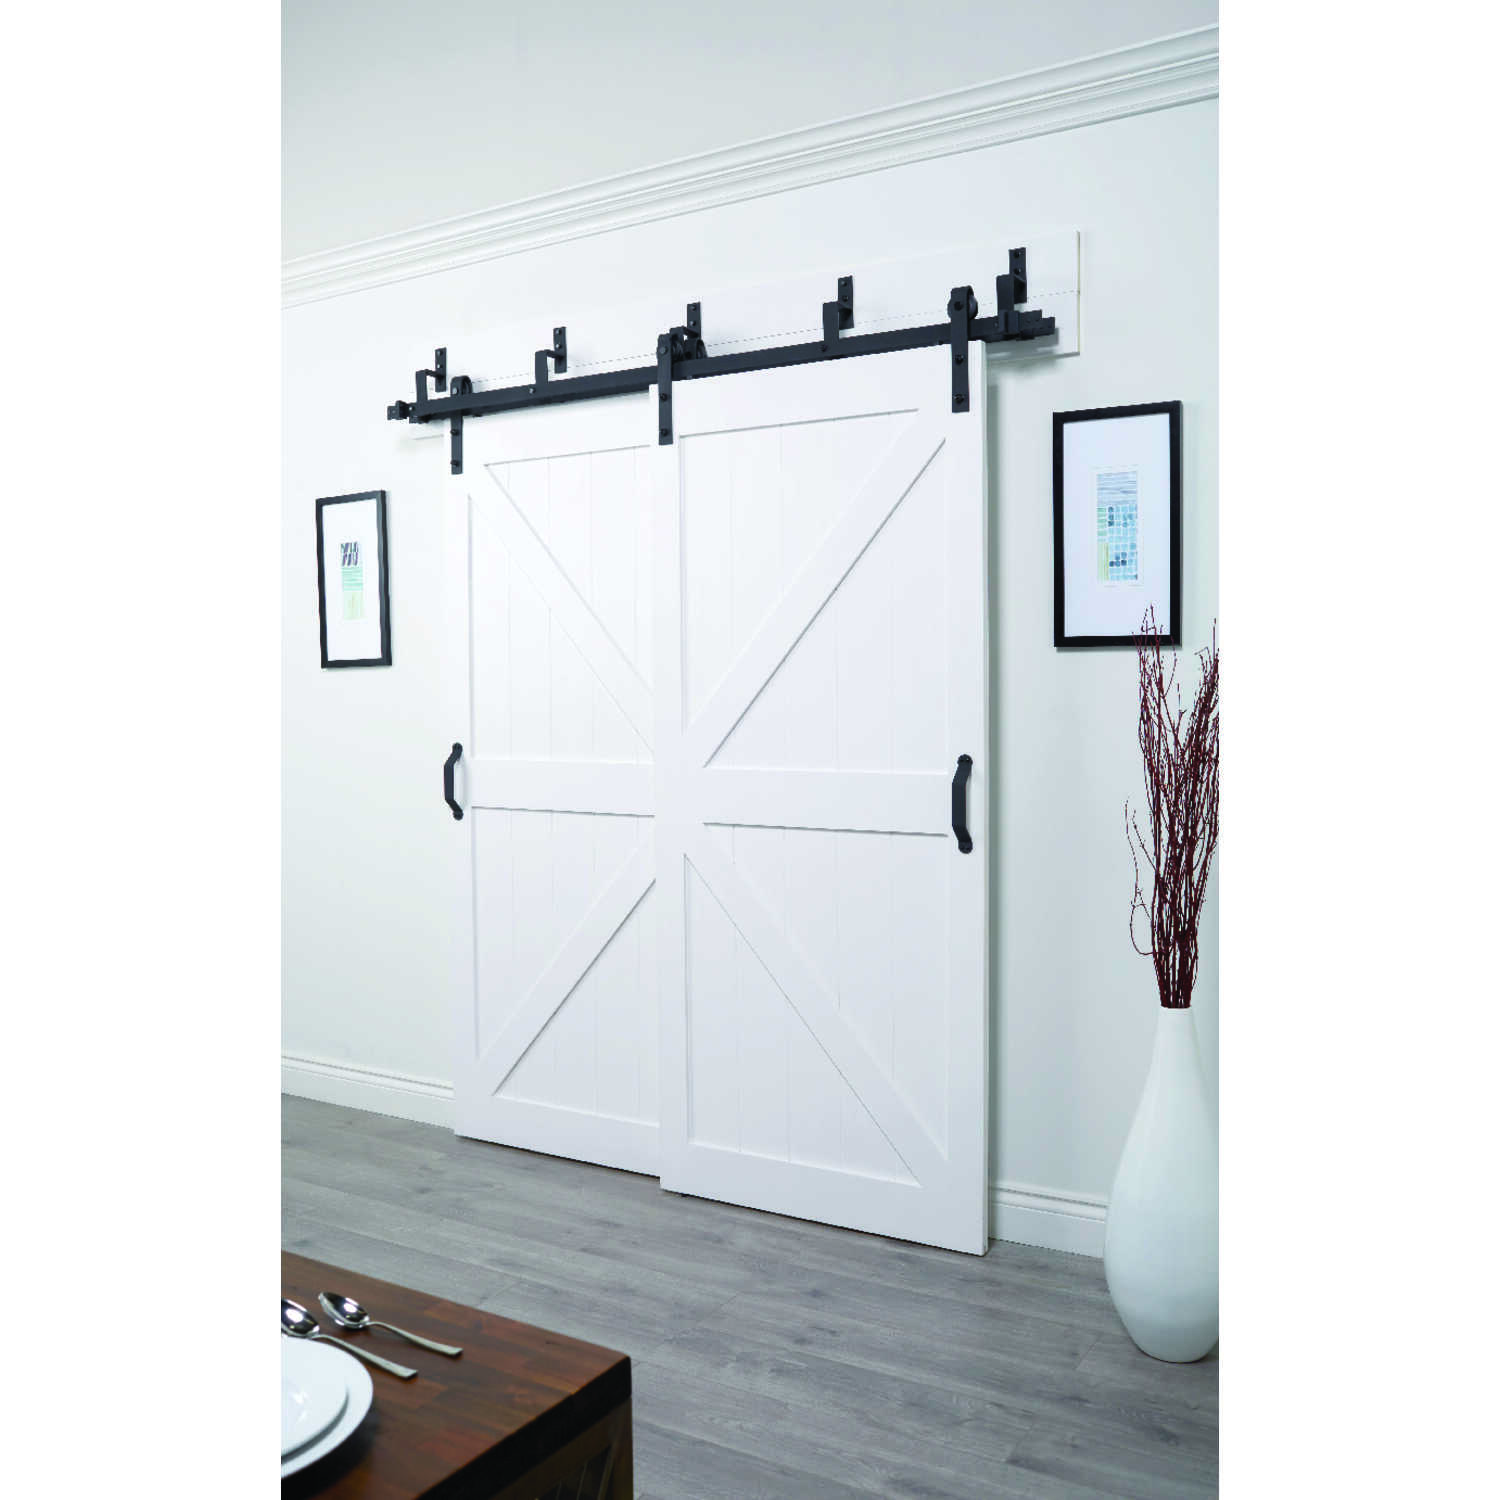 ACME  Sliding Door Track Kit